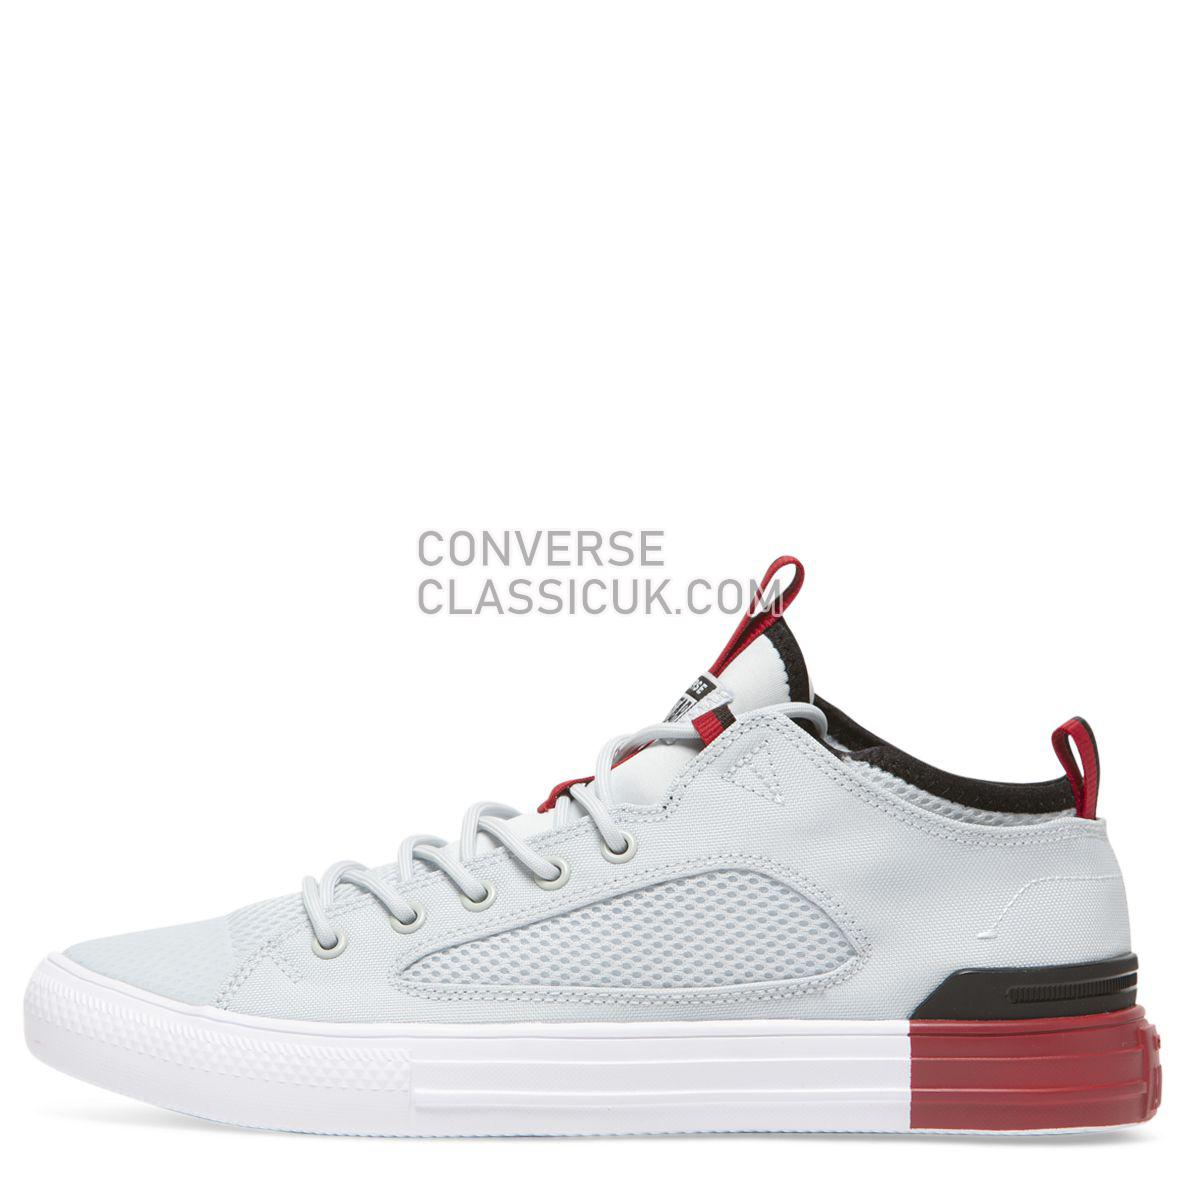 Converse Chuck Taylor All Star Ultra Colour Block Mesh Low Top Pure Platinum Mens Womens Unisex 160483 Pure Platinum/Gym Red/Black Shoes